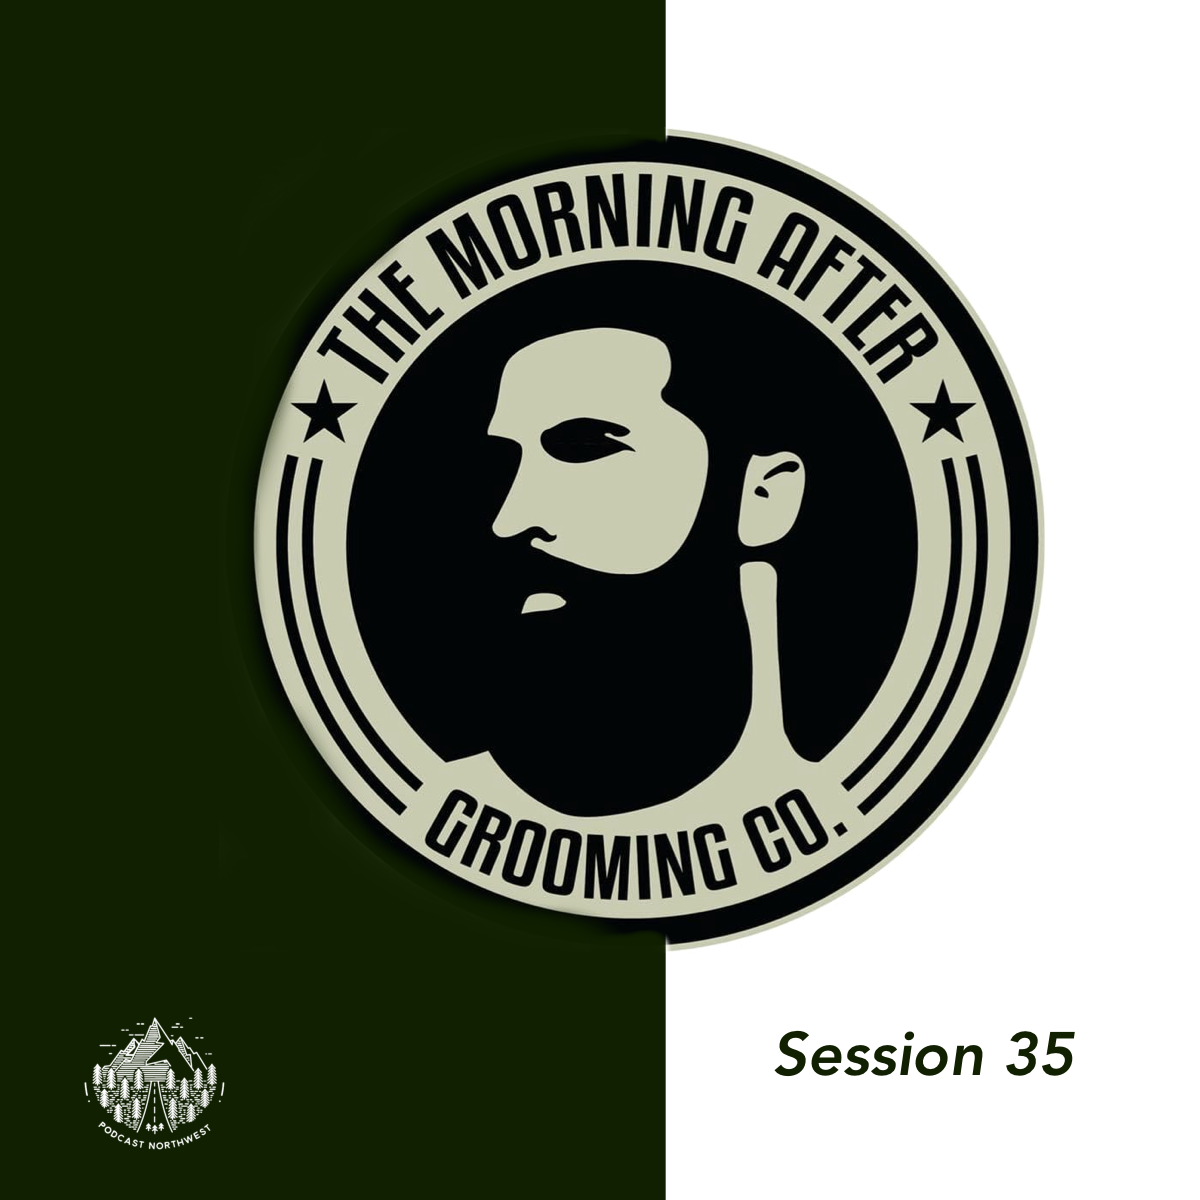 Session 35: The Morning After Grooming Company